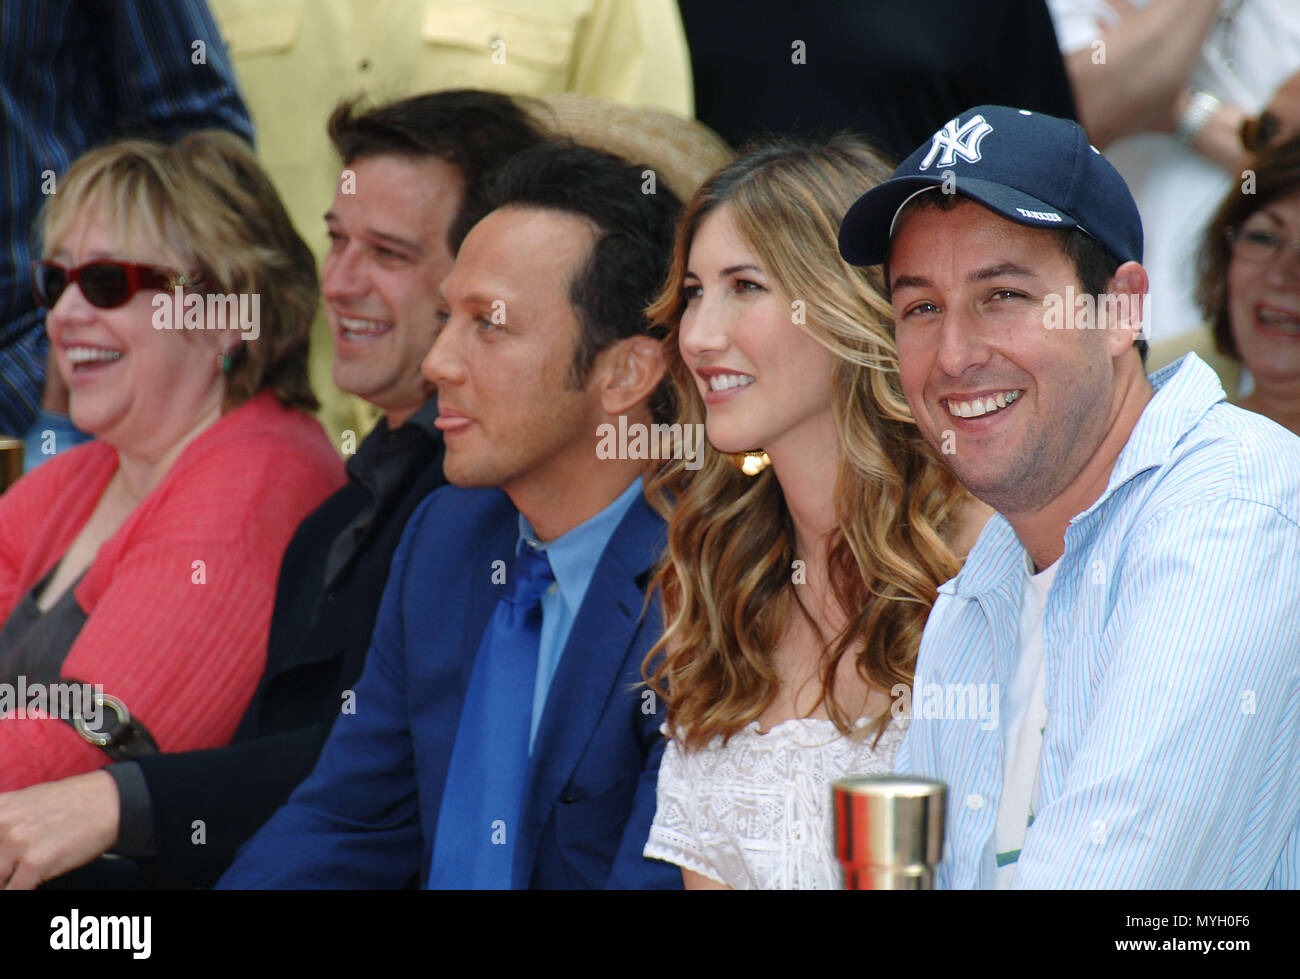 Adam Sandler with his wife Jacqui, Rob Schneider, and kathy